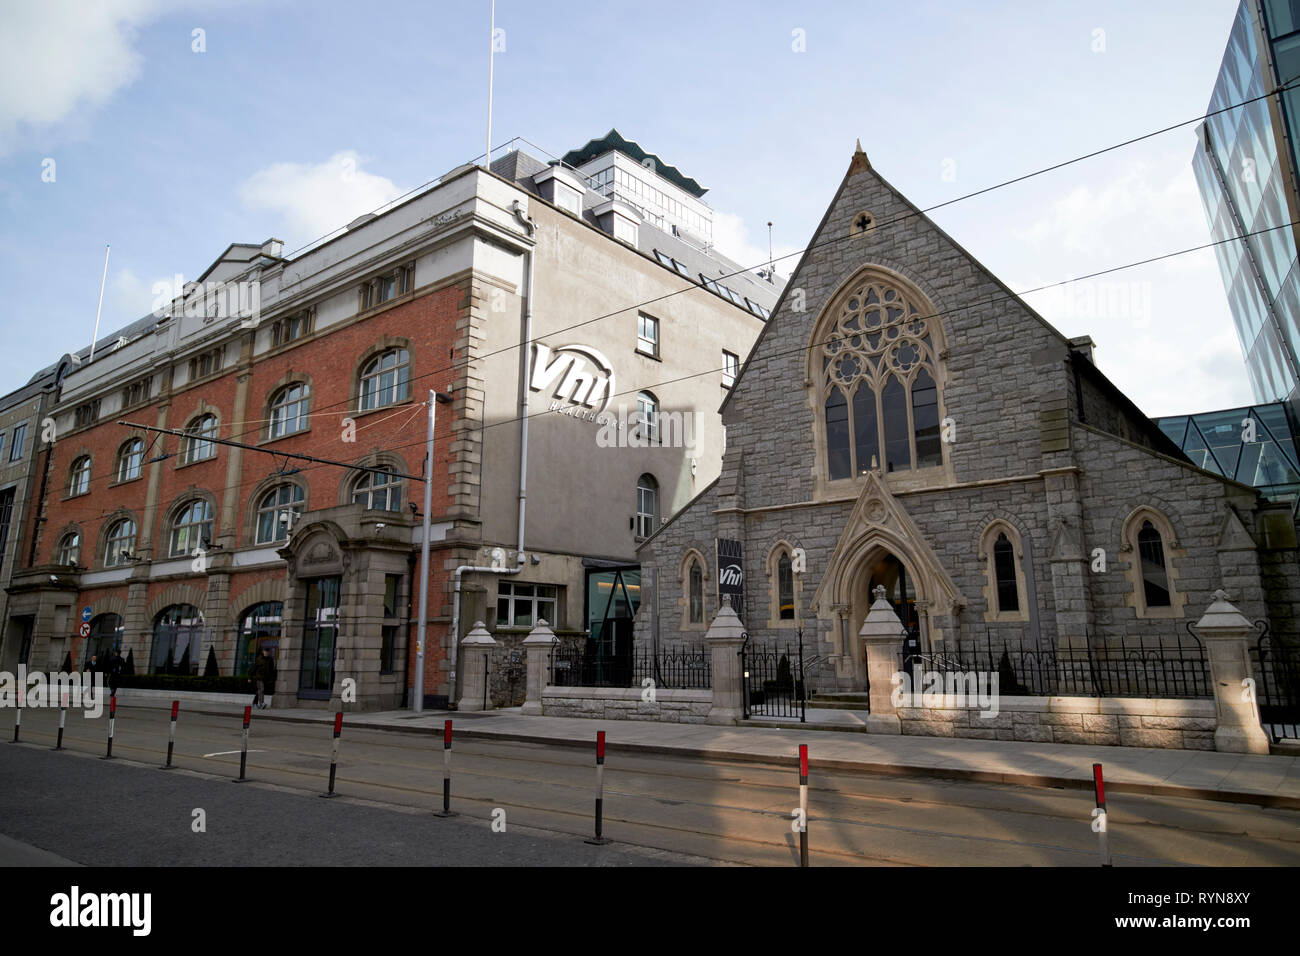 VHI healthcare building and old scots presbyterian church ormond quay and scots church Dublin Republic of Ireland Europe - Stock Image